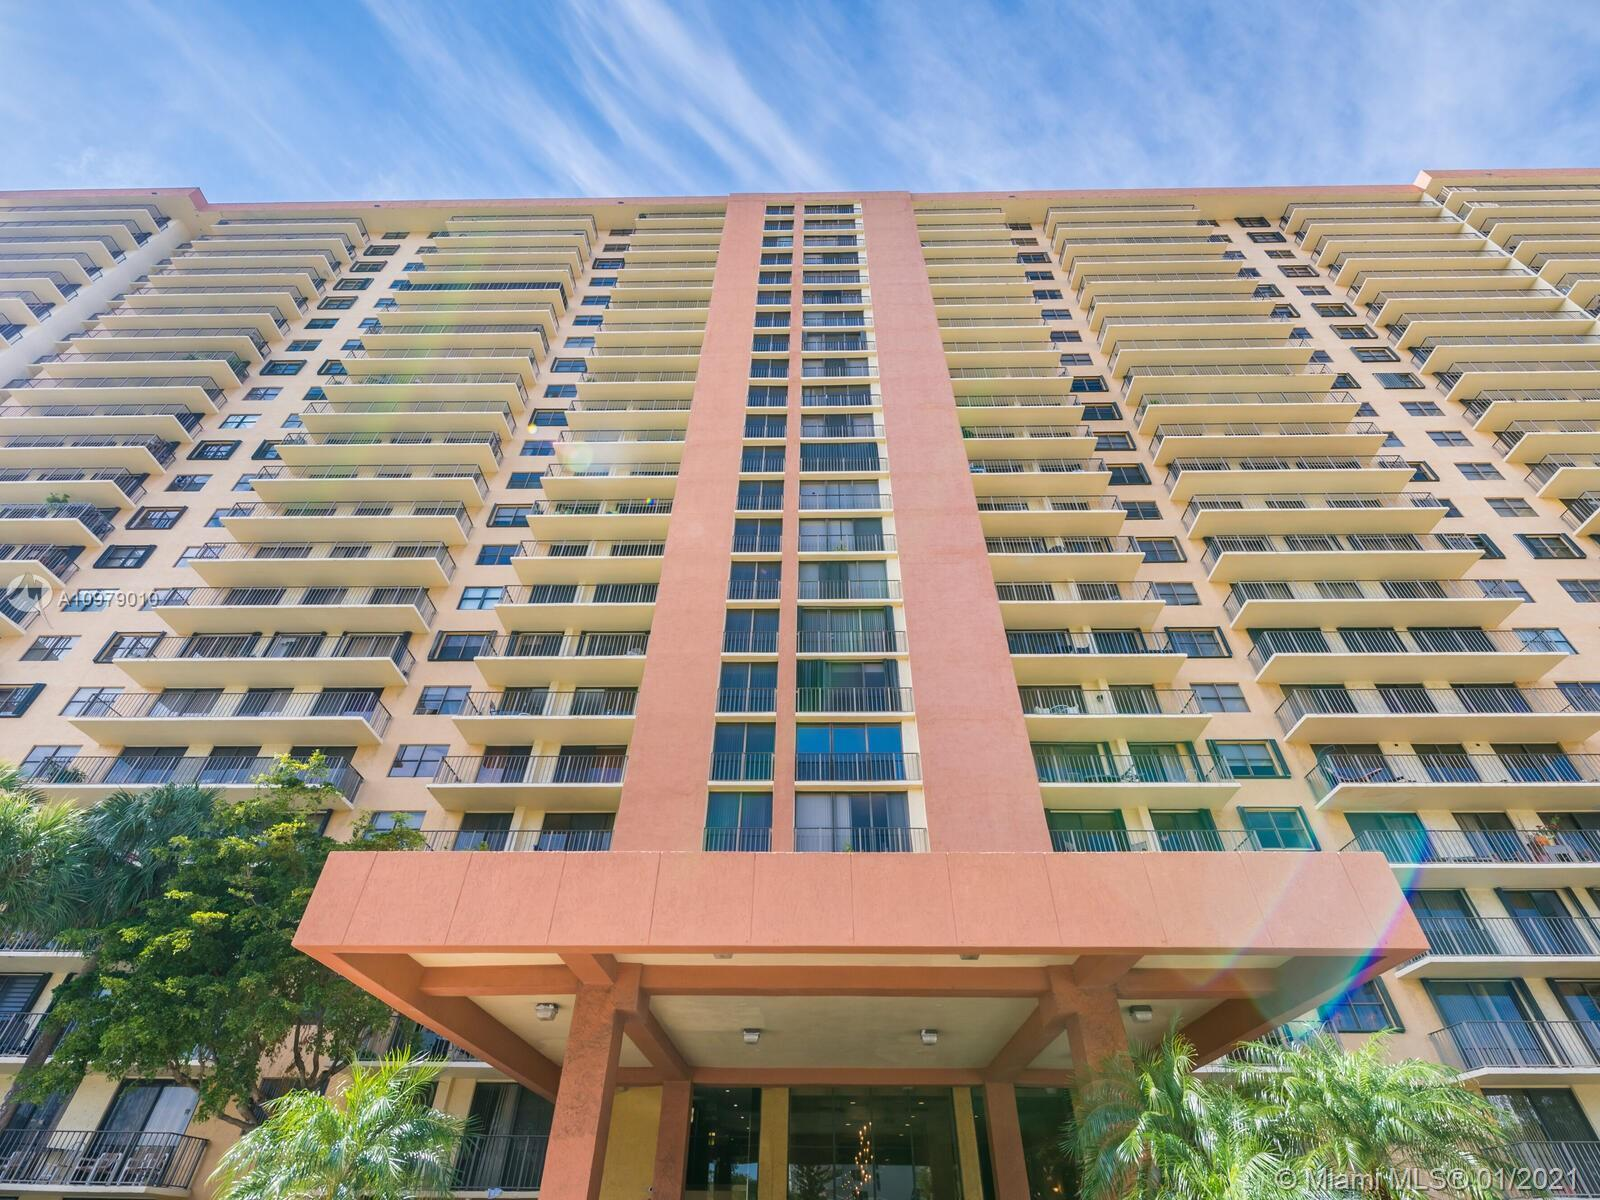 MOST DESIREABLE 700 BUILDING OF WINSTON TOWERS OFFERS THIS 1 BED, 1.5 BATH  UNIT WITH GARDEN AND INT